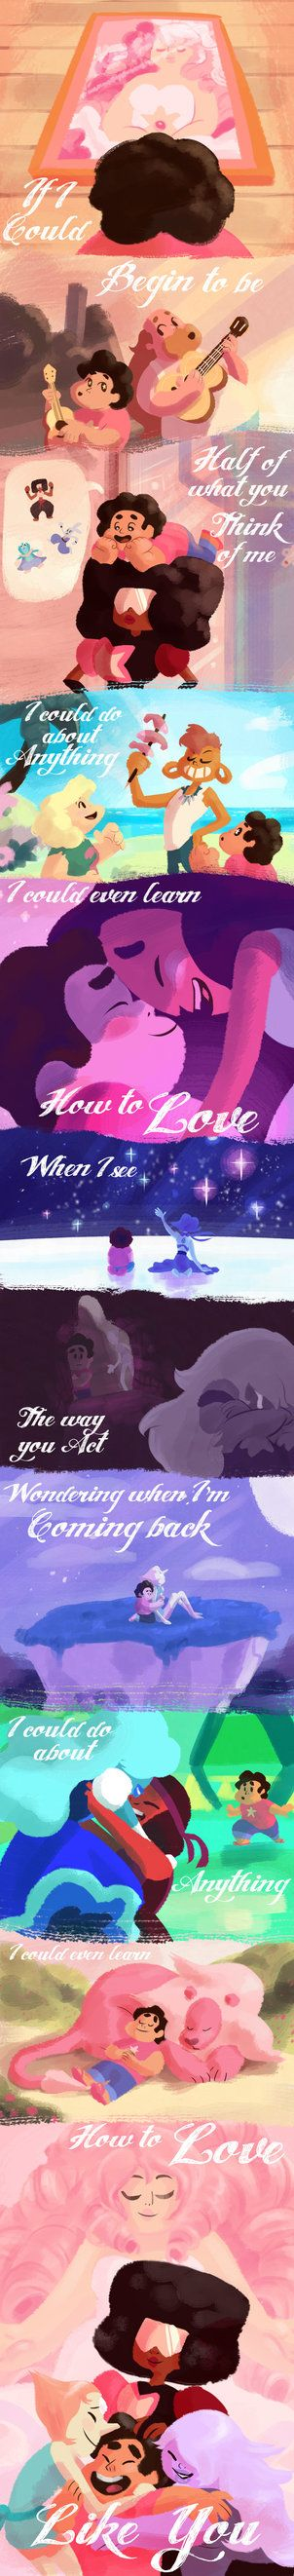 I love how Steven Universe revolves around all kinds of love, especially that which Steven gives and receives. Such a sweet little show. When I heard the lyrics to the end credits song, I had to do...